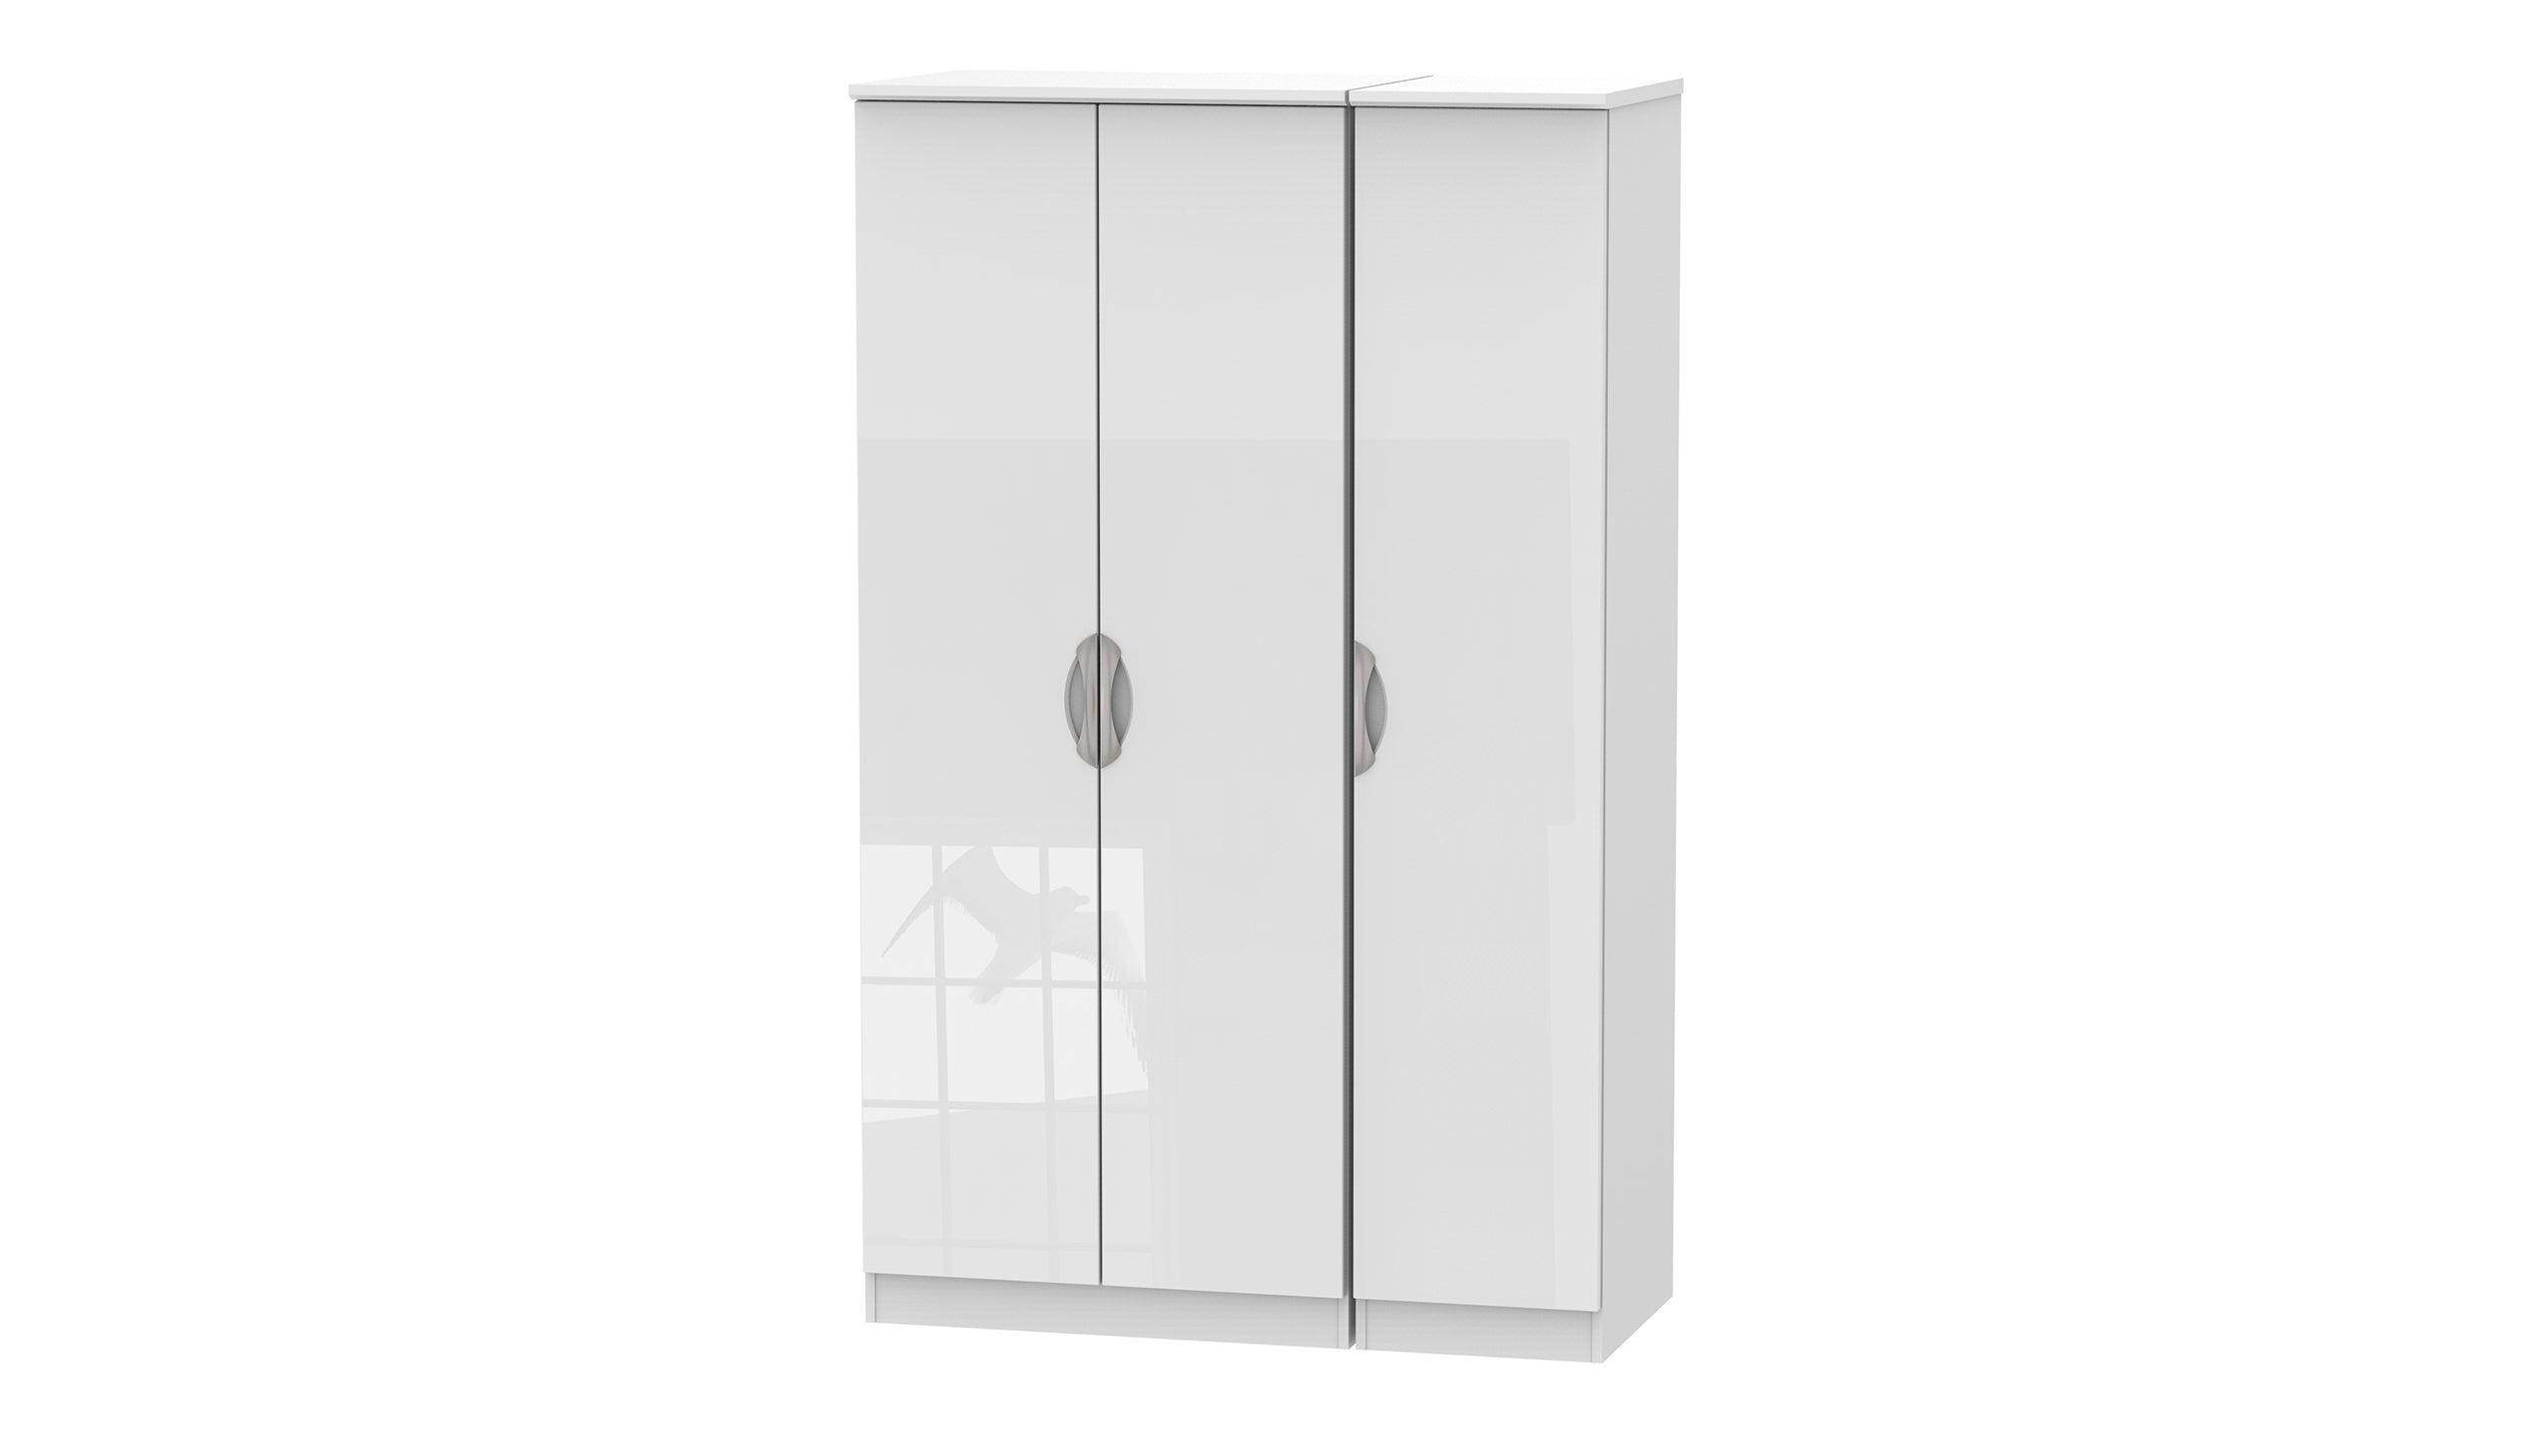 Moda 3 Door Wardrobe - AHF Furniture & Carpets